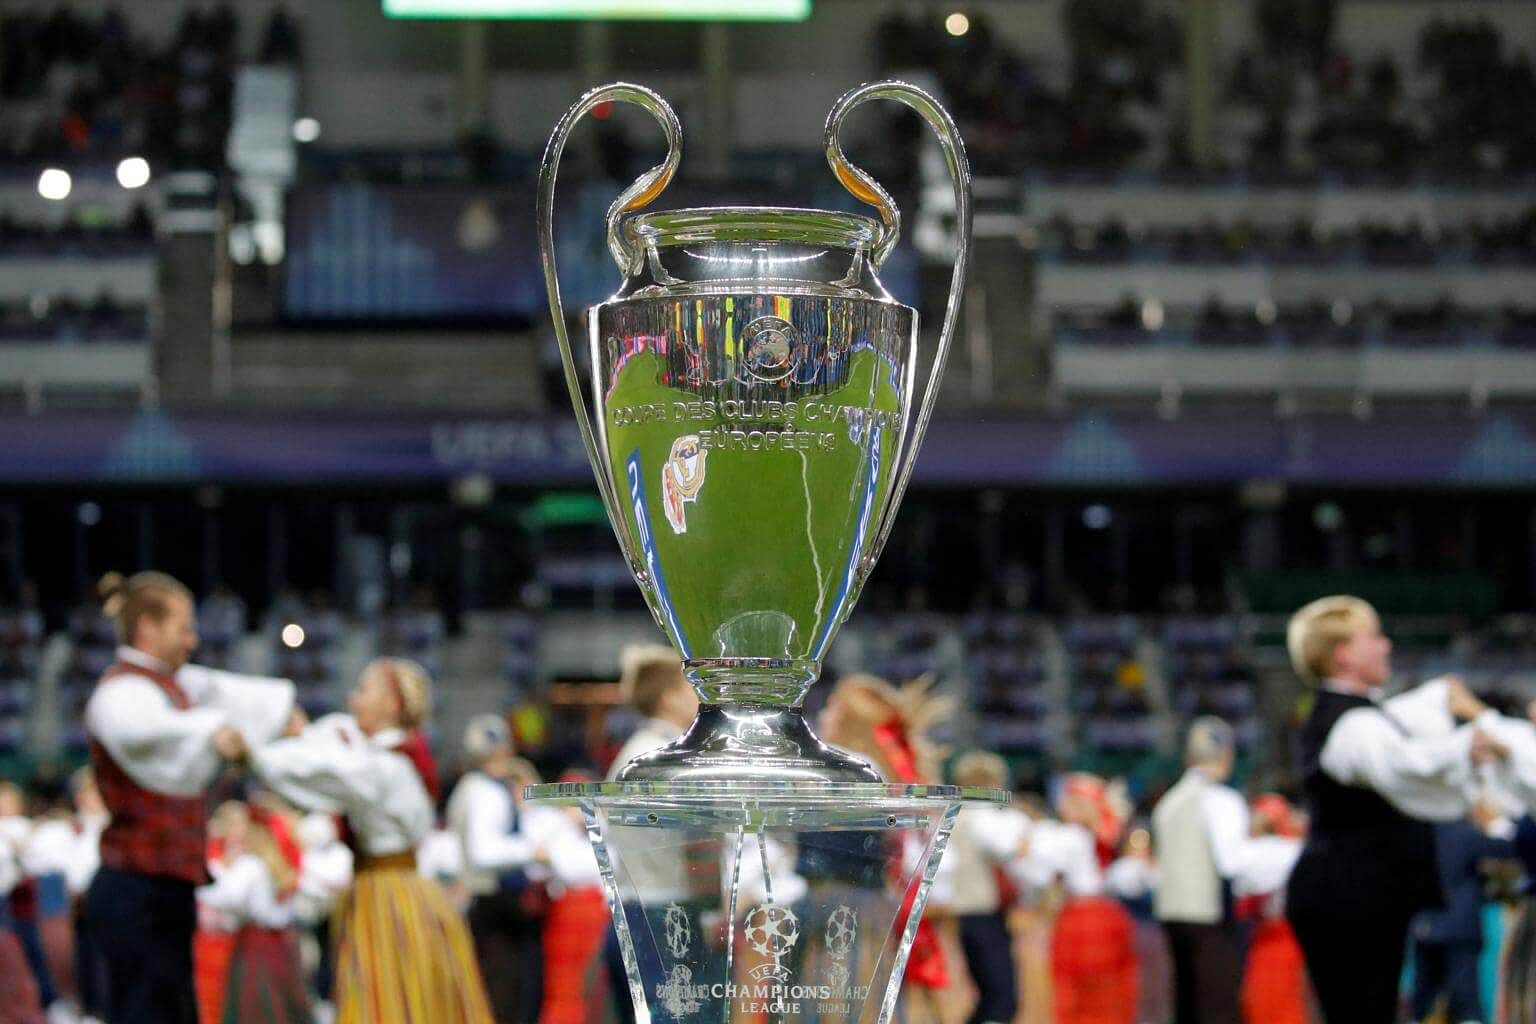 Football: StarHub secures broadcast rights for Champions